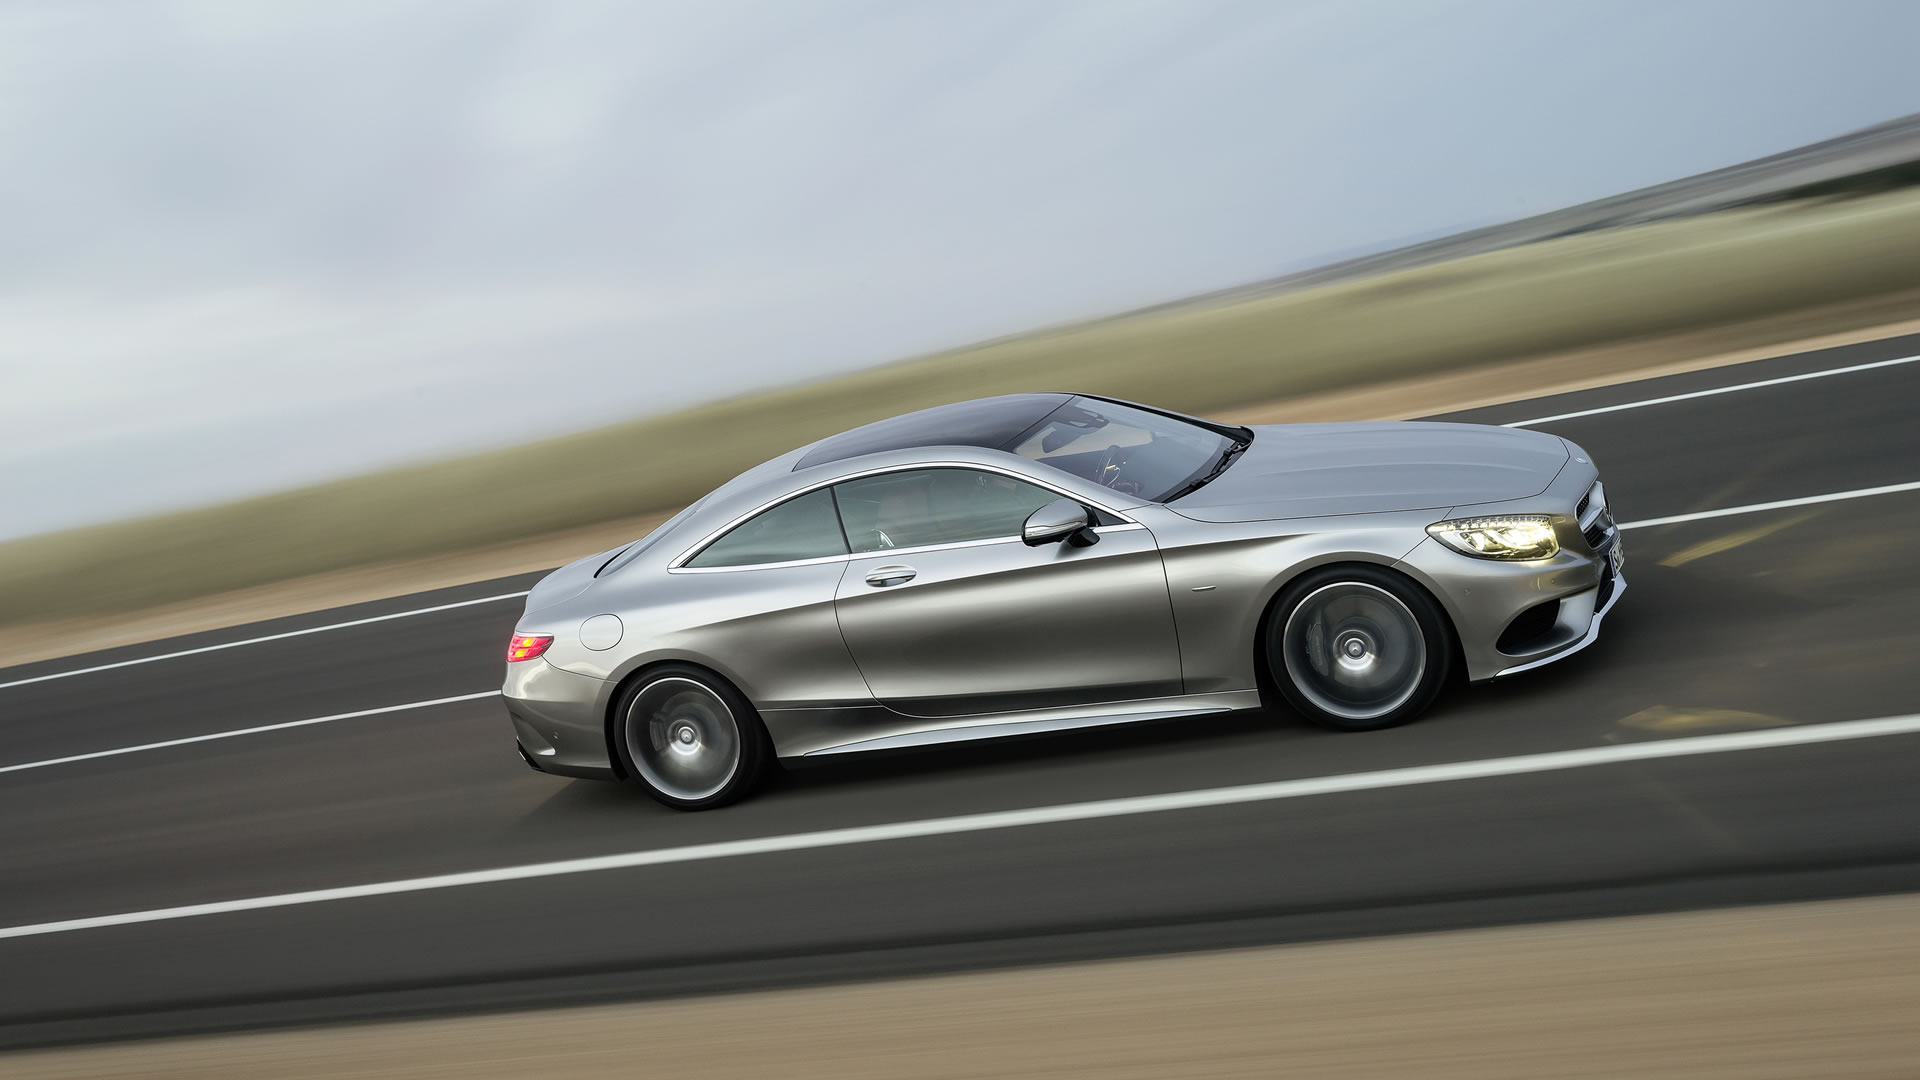 2015 mercedes benz s550 coupe wallpaper 1920 x 1080 for 2015 mercedes benz s550 coupe